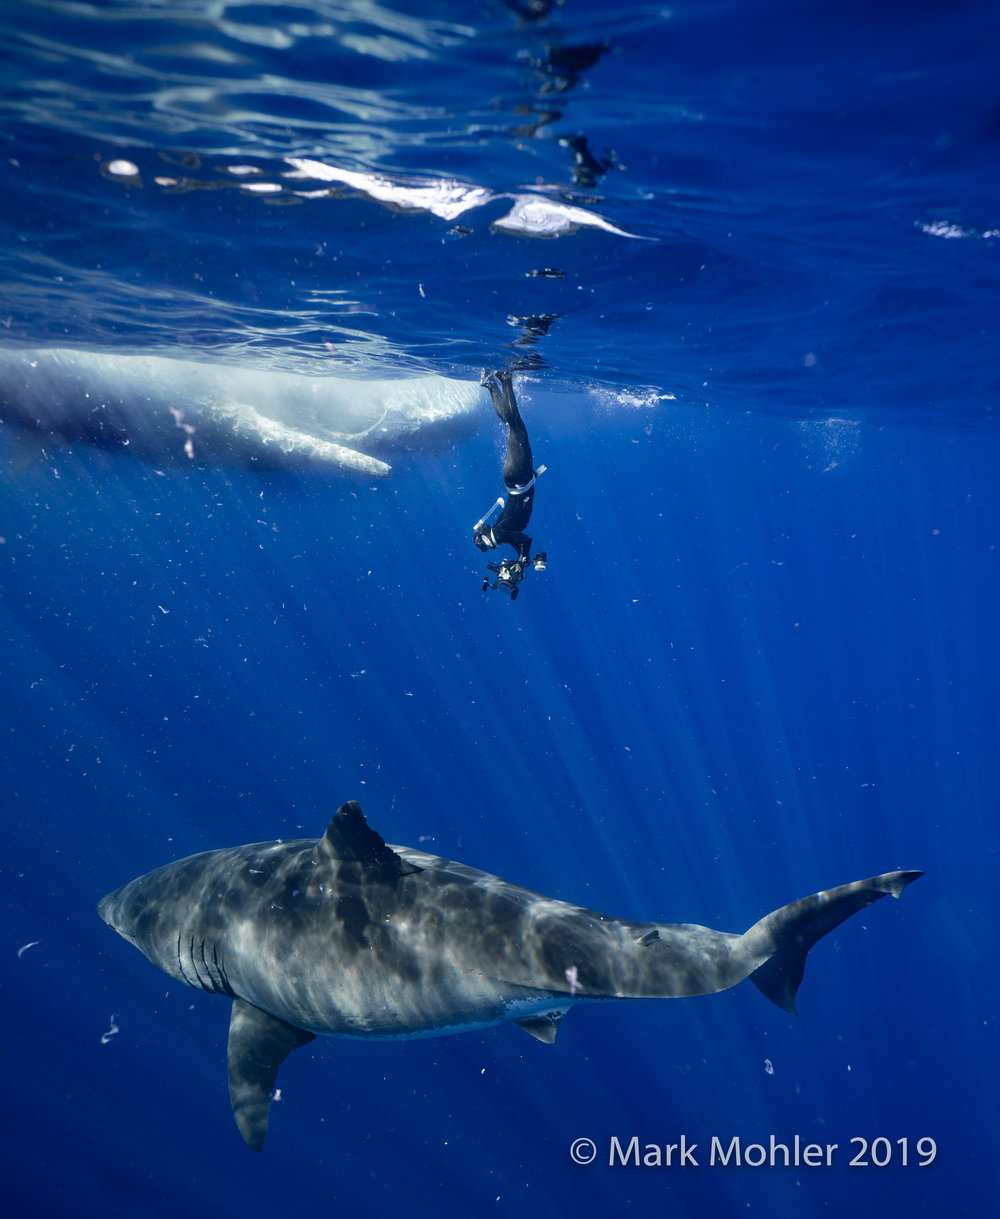 The massive and rarely seen great white shark, Deep Blue, made an appearance near Oahu, and Mark Mohler '09 was there to document it.